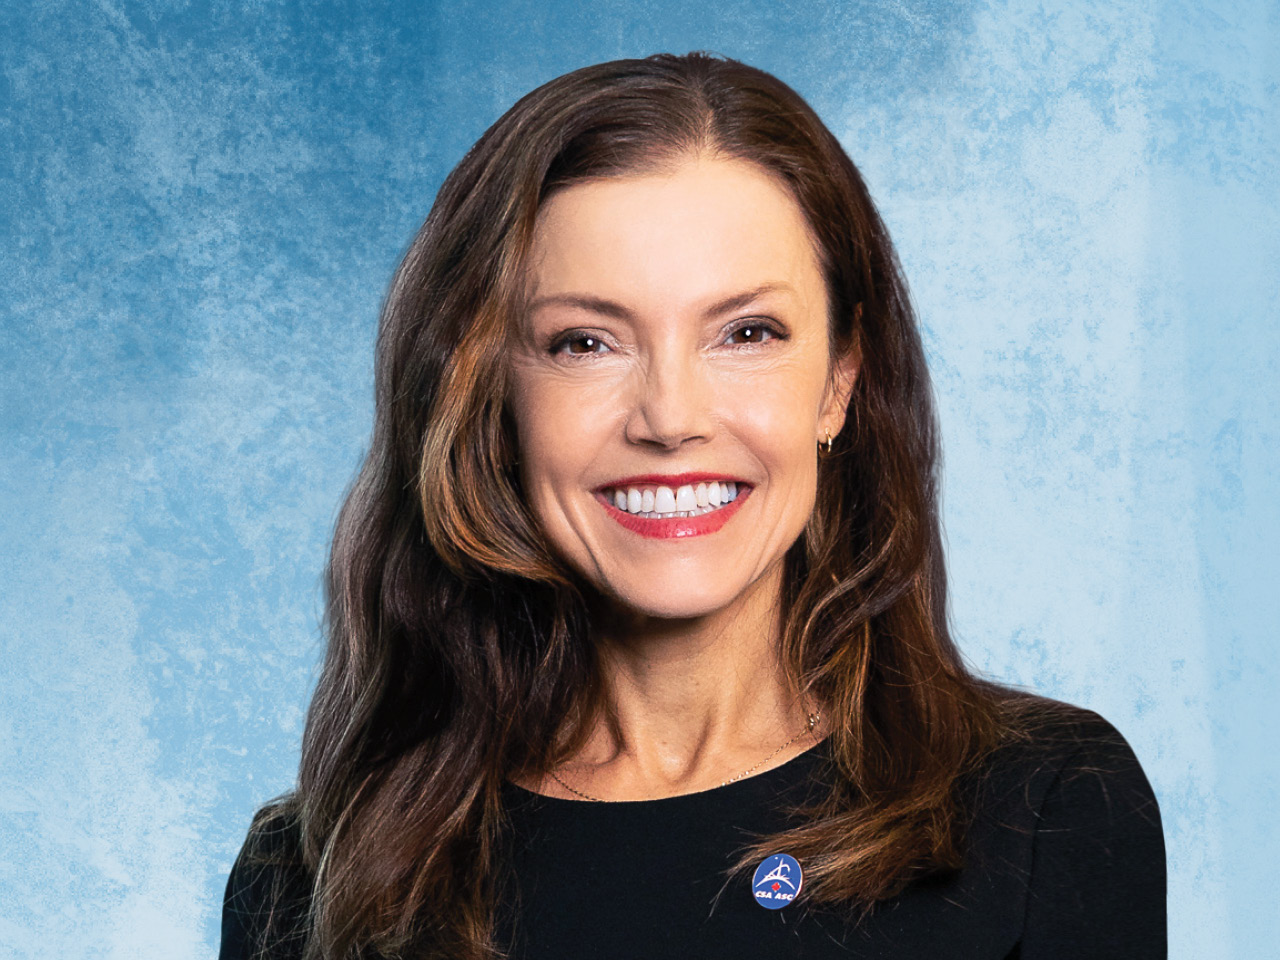 A portrait of Lisa Campbell, president of the Canadian Space Agency, on a blue background